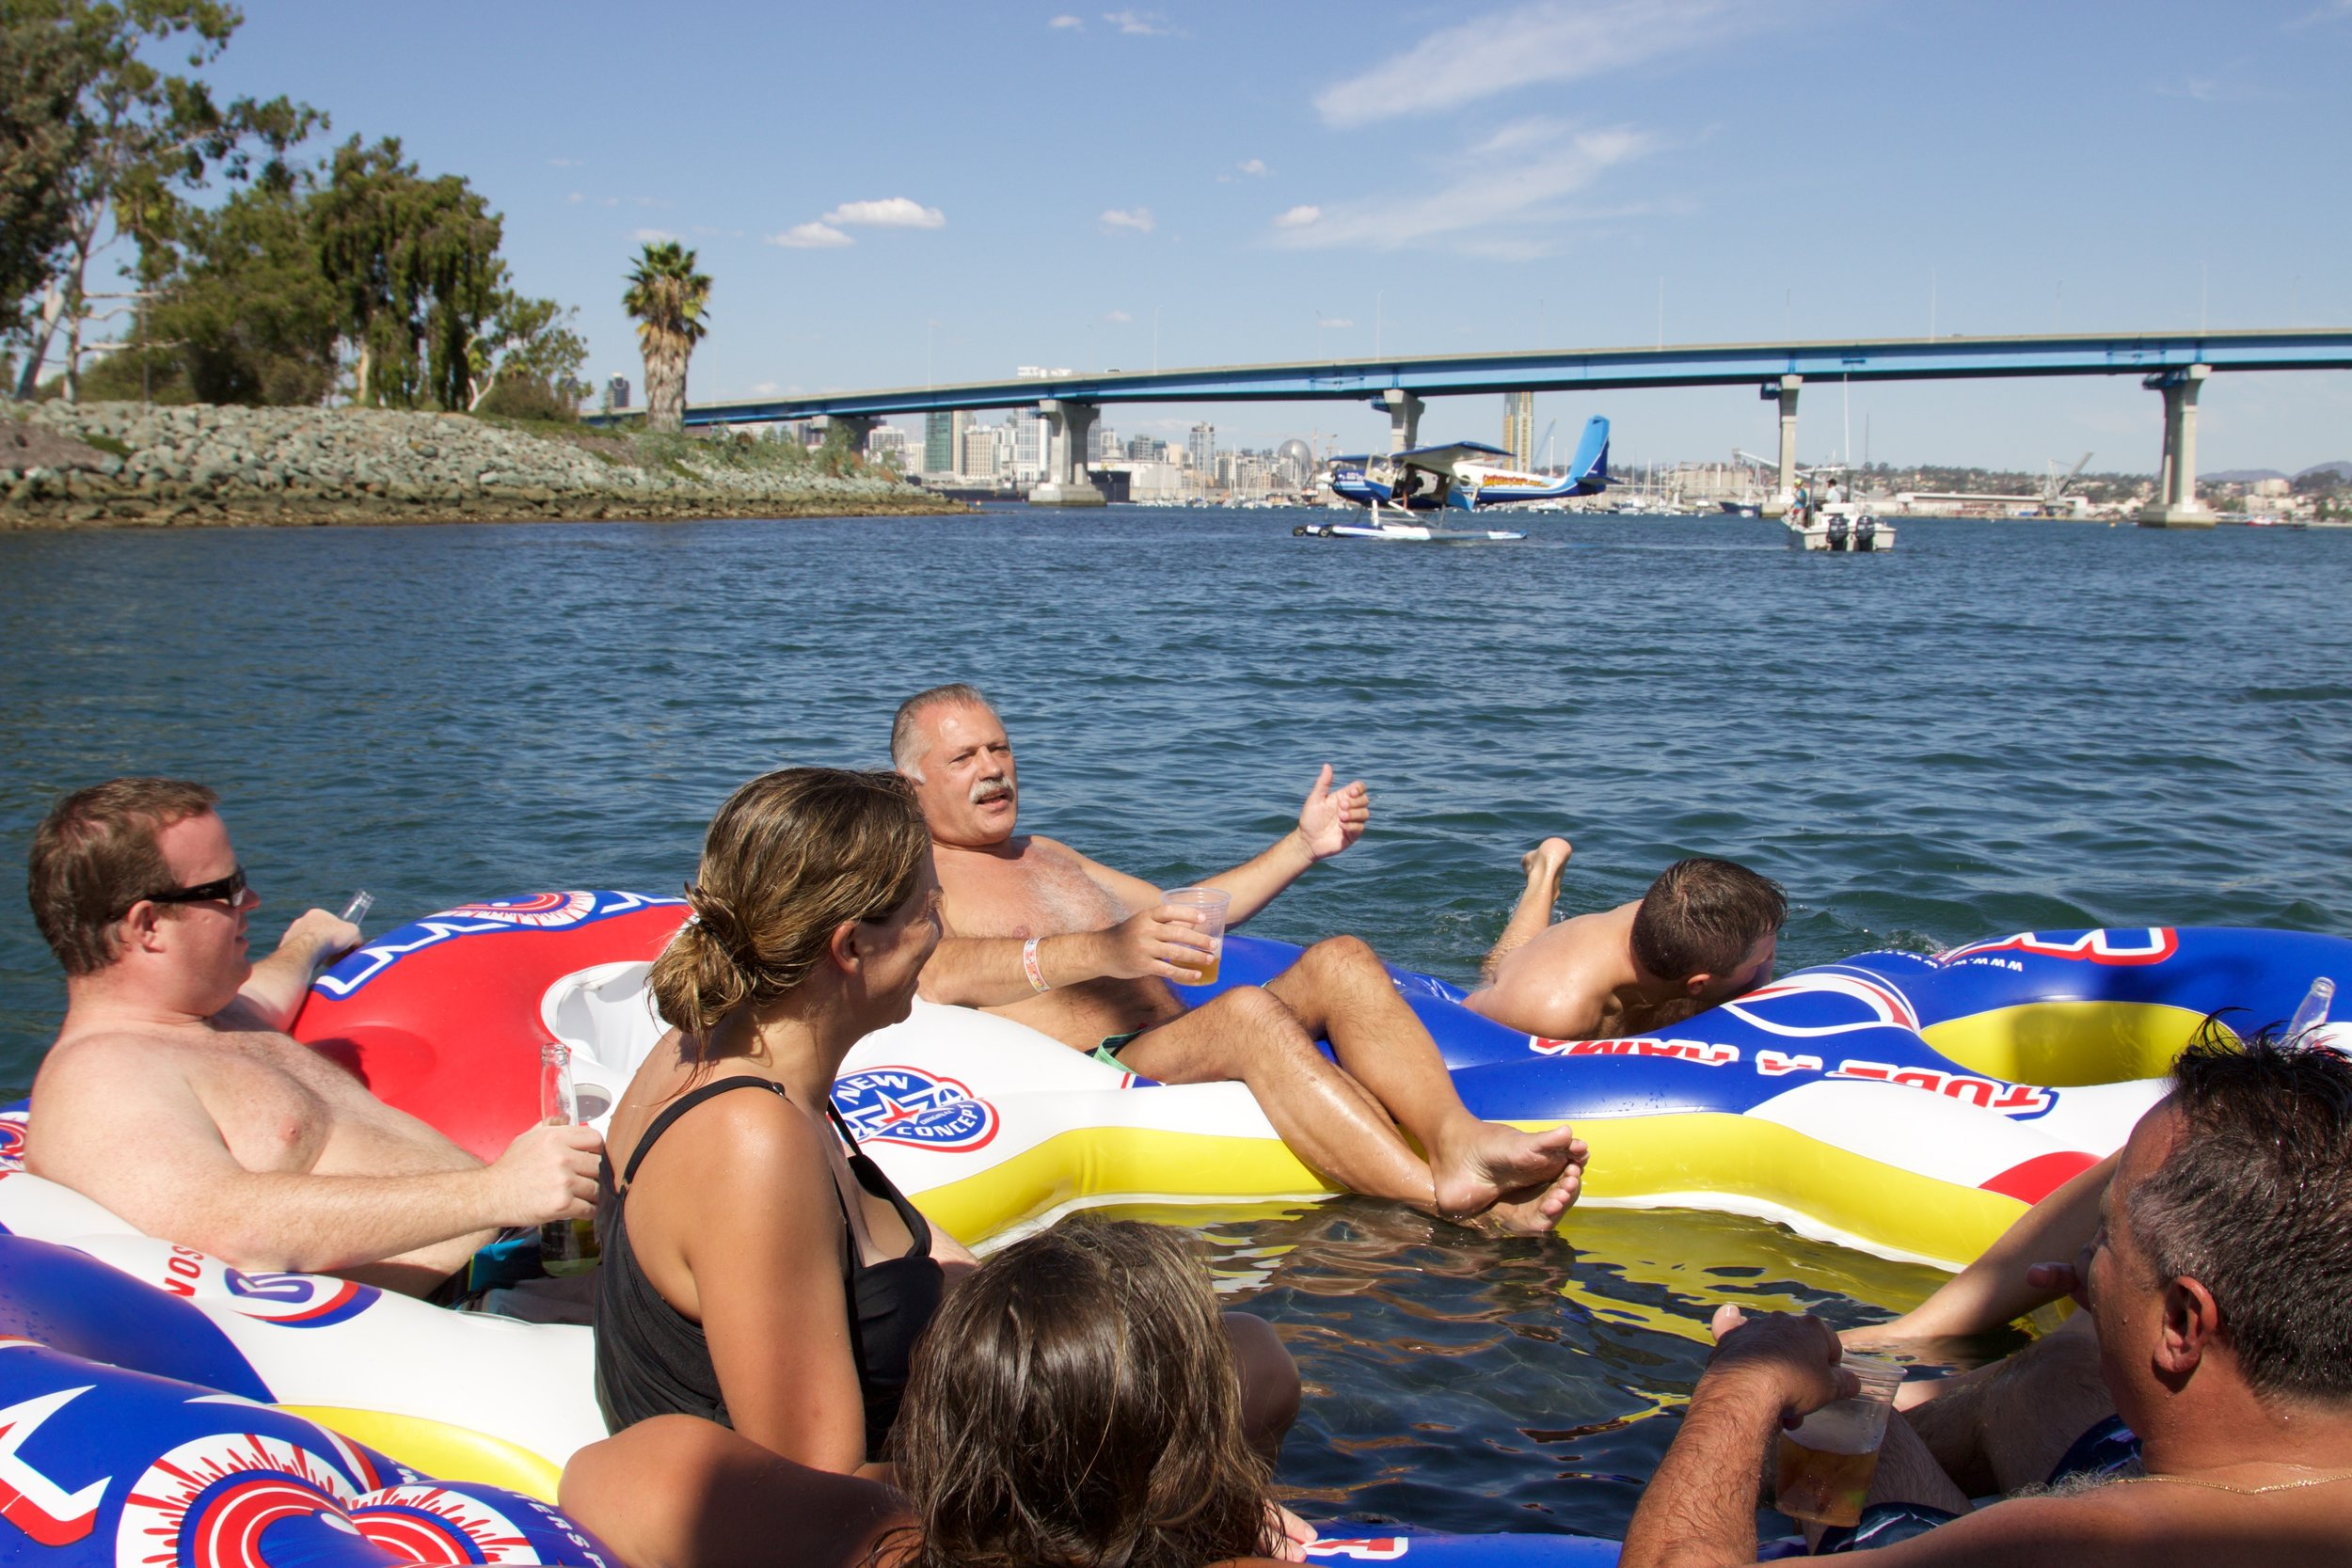 san diego bay yacht charters, booze cruise and boat party